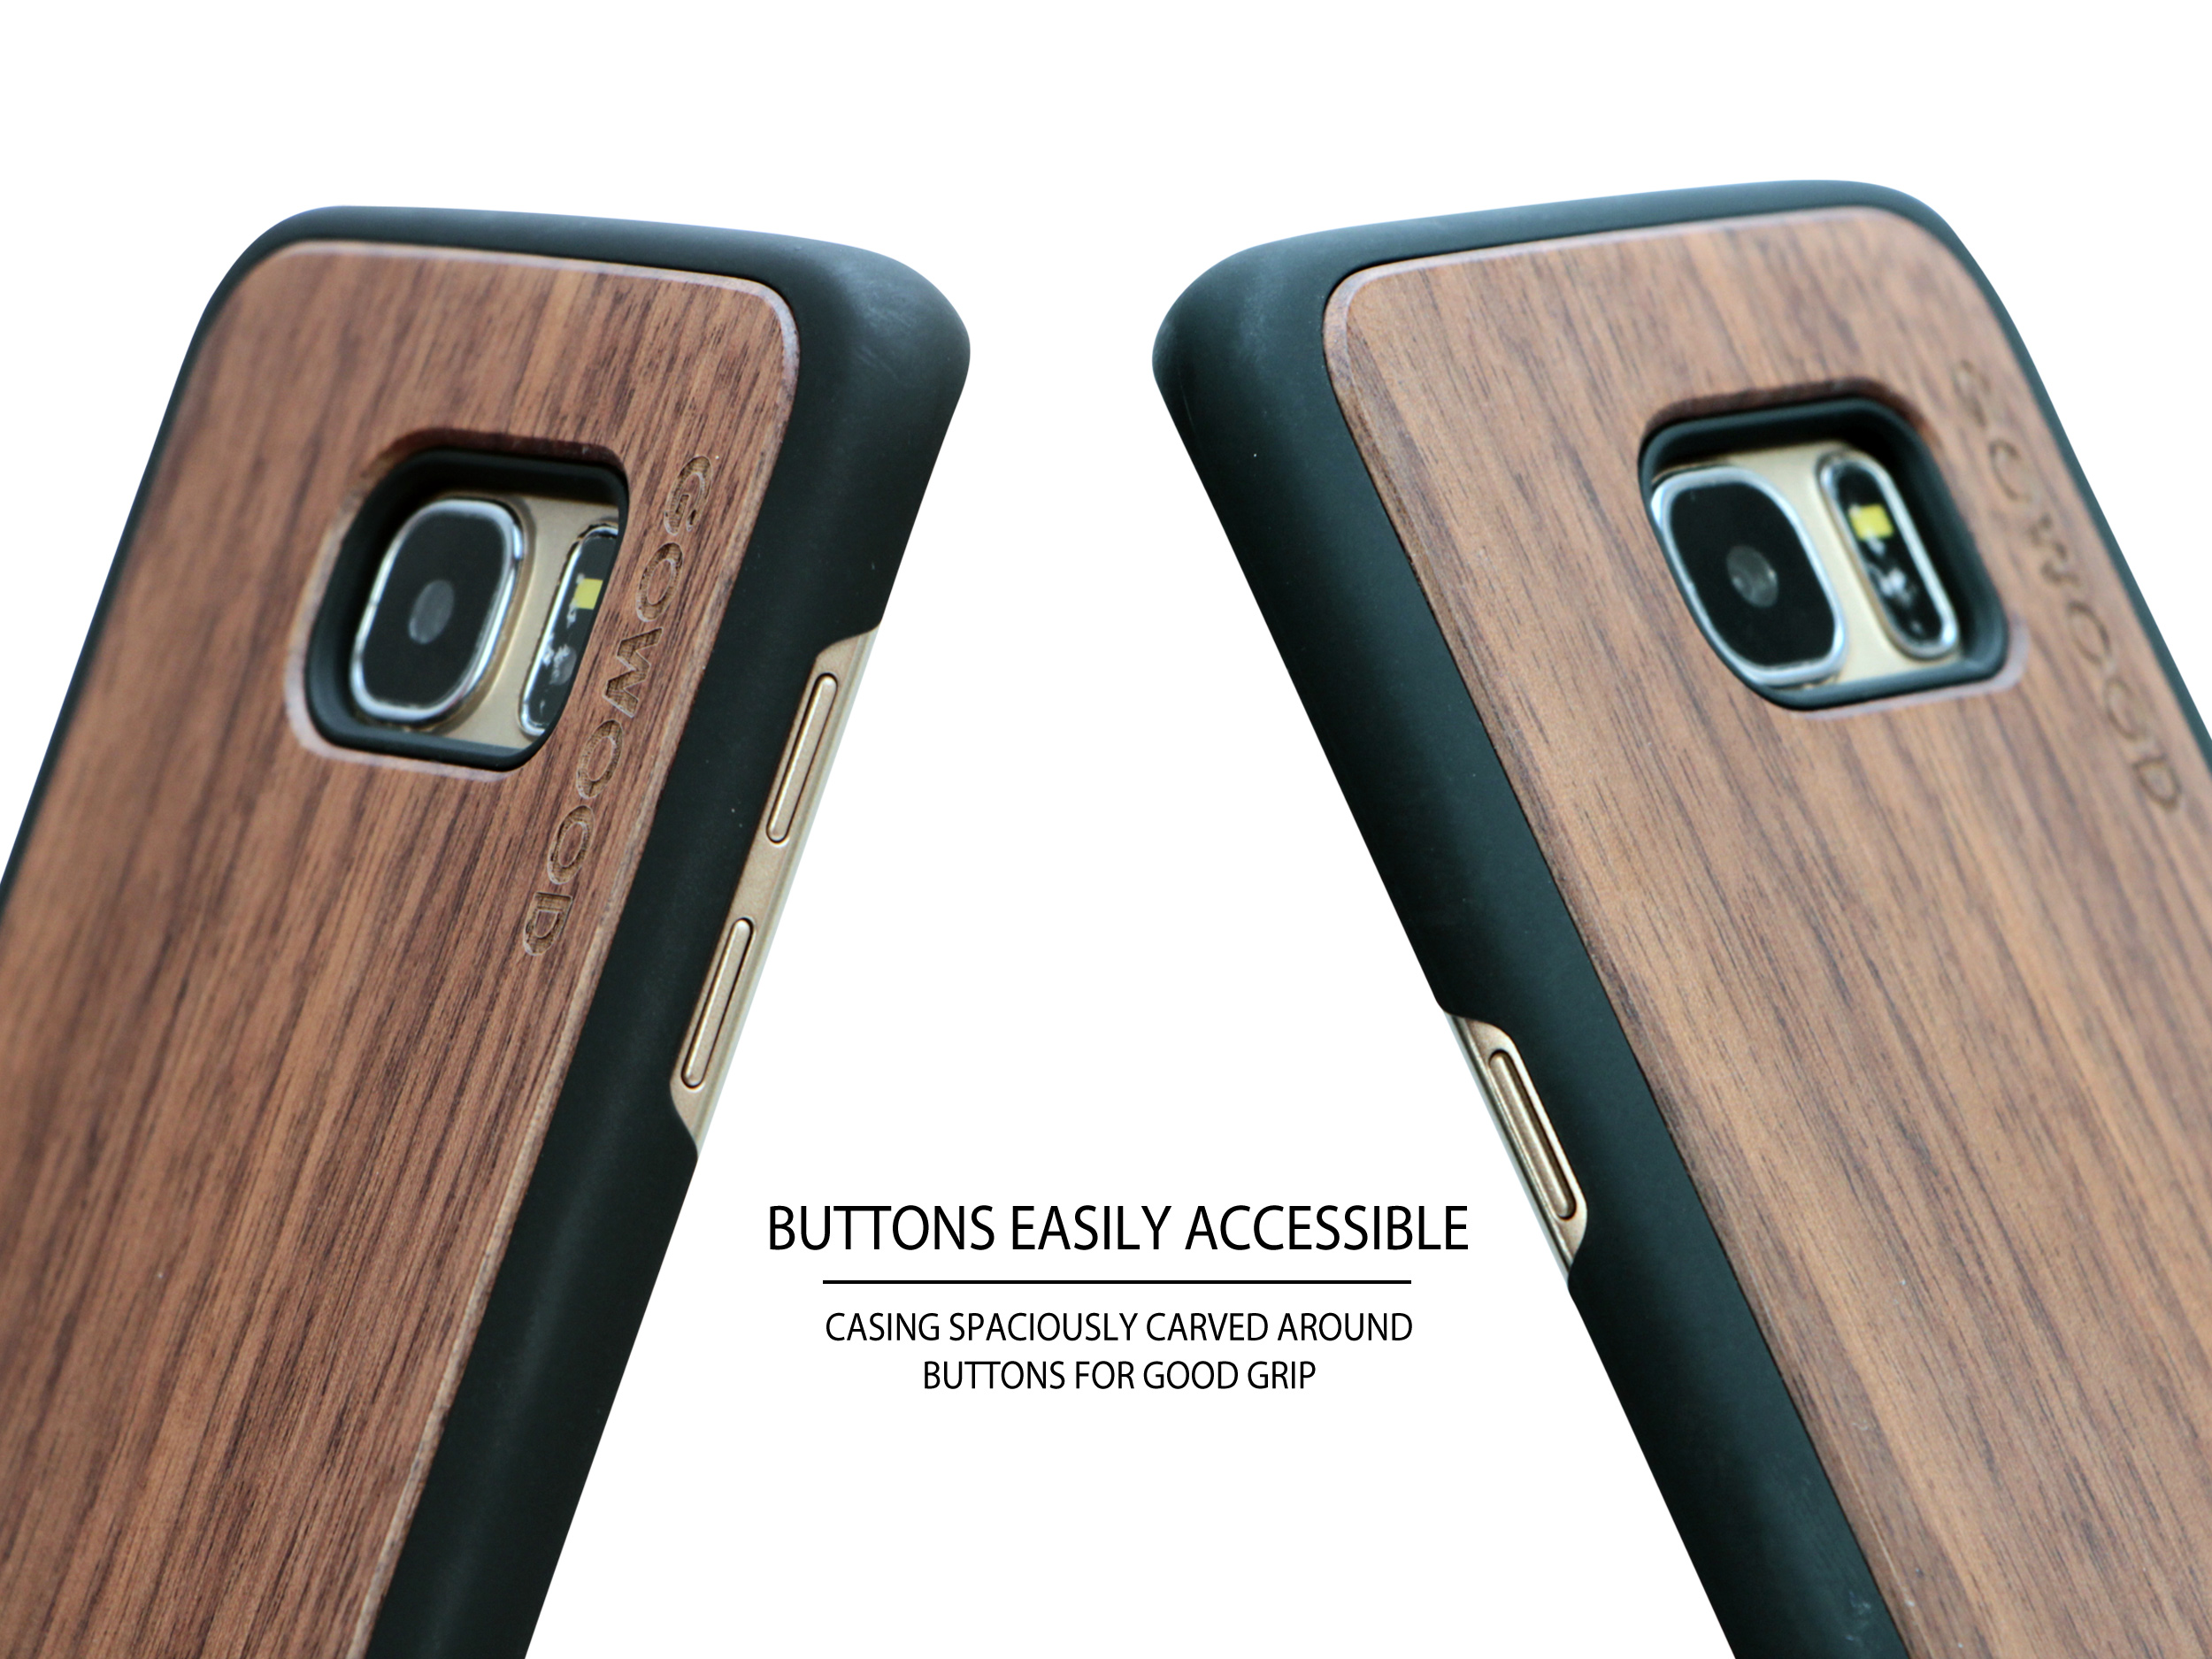 Samsung Galaxy S7 Edge wood case walnut buttons